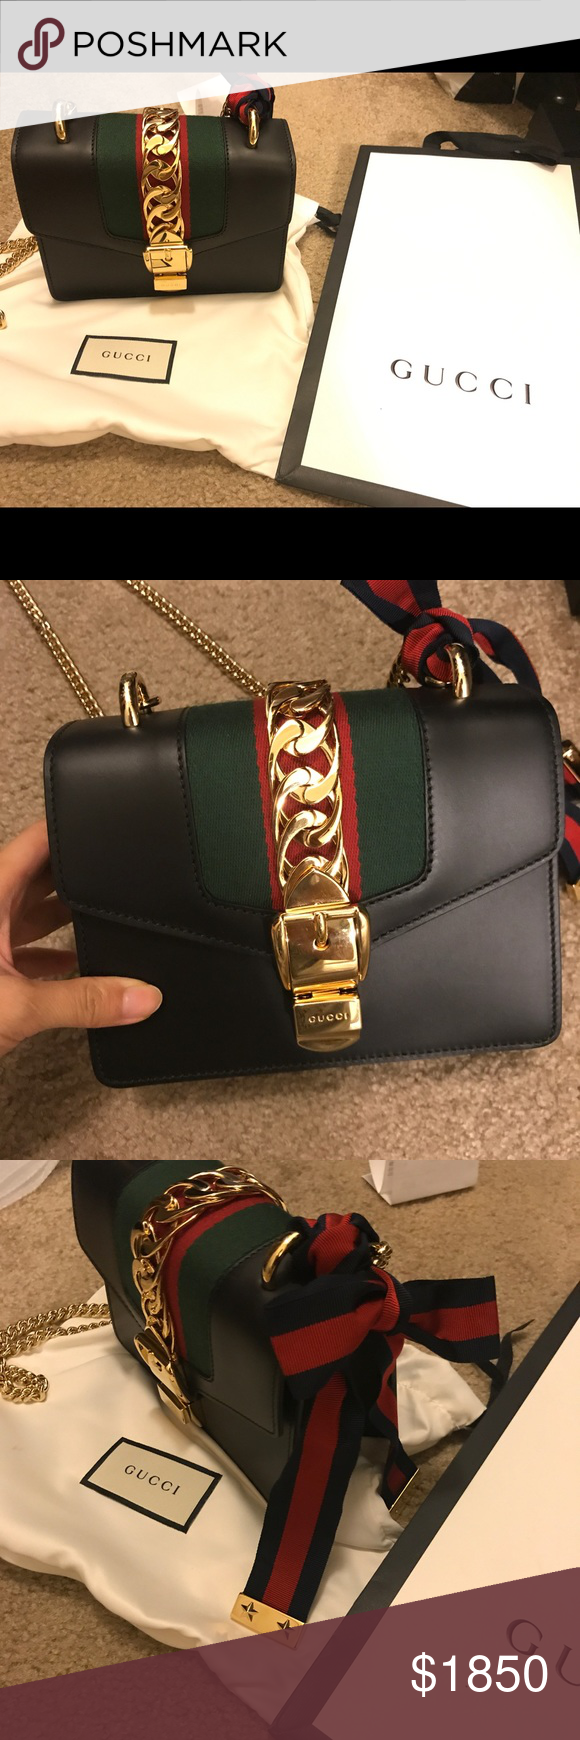 Gucci Sylvie leather mini chain bag I bought this bag a month ago at Las  Vegas ff96e0b9ad923